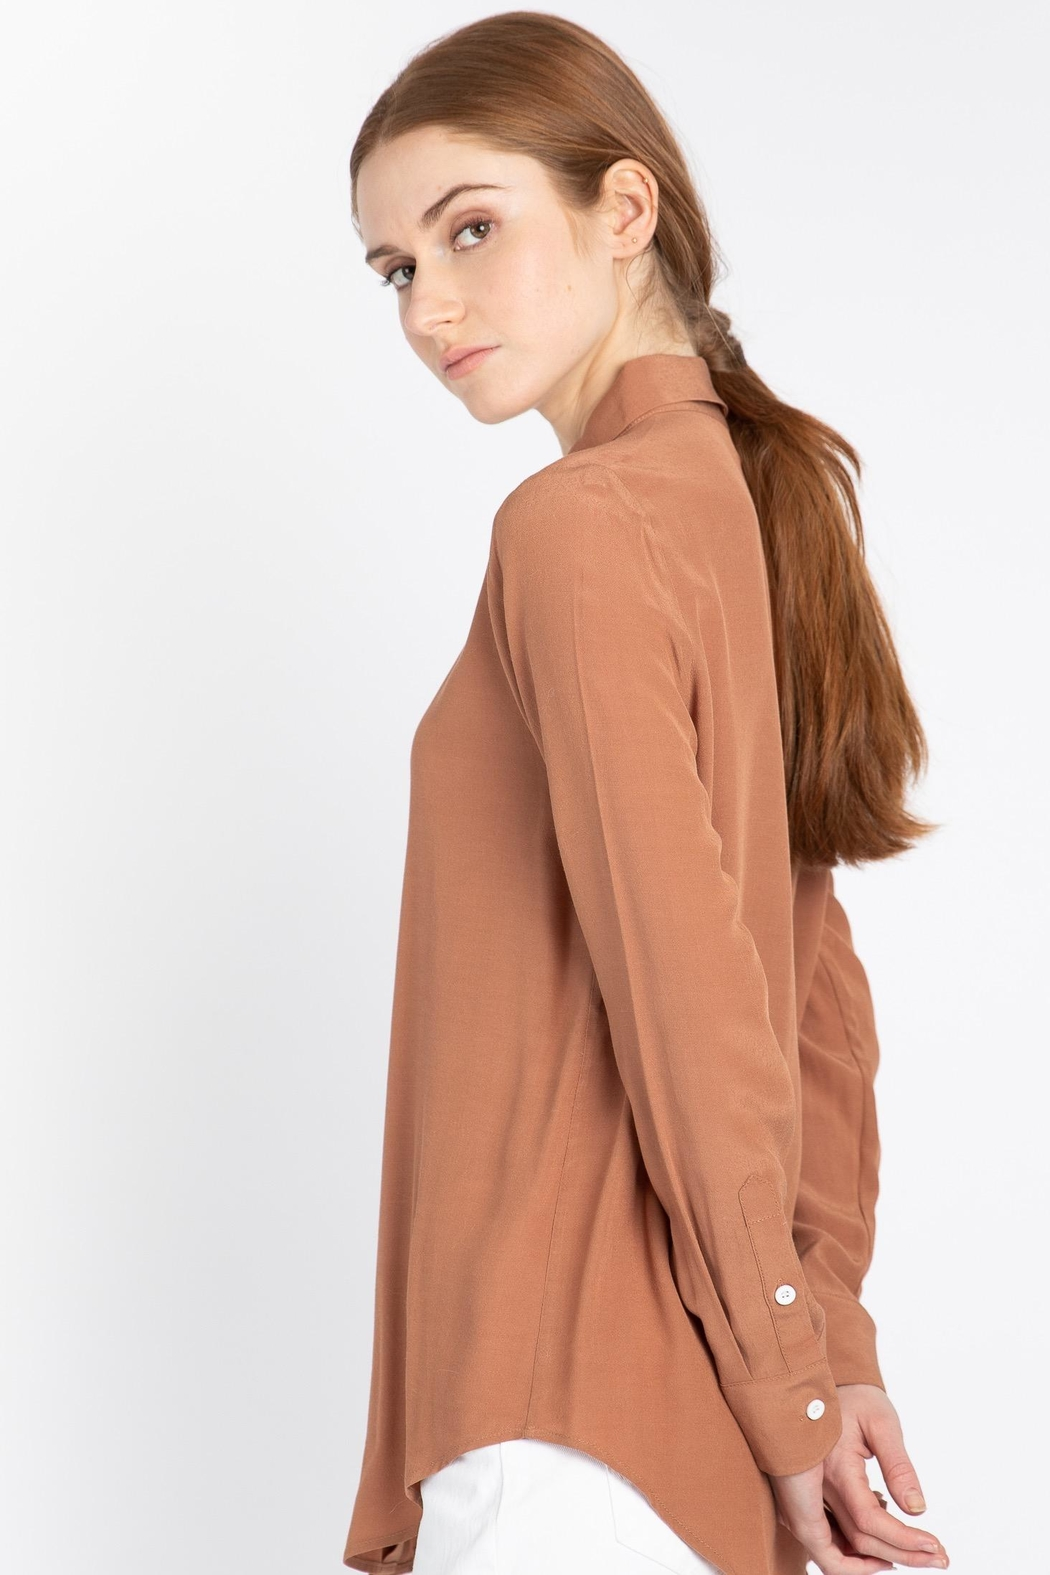 Naif Montreal Carvello Terracotta Blouse - Side Cropped Image